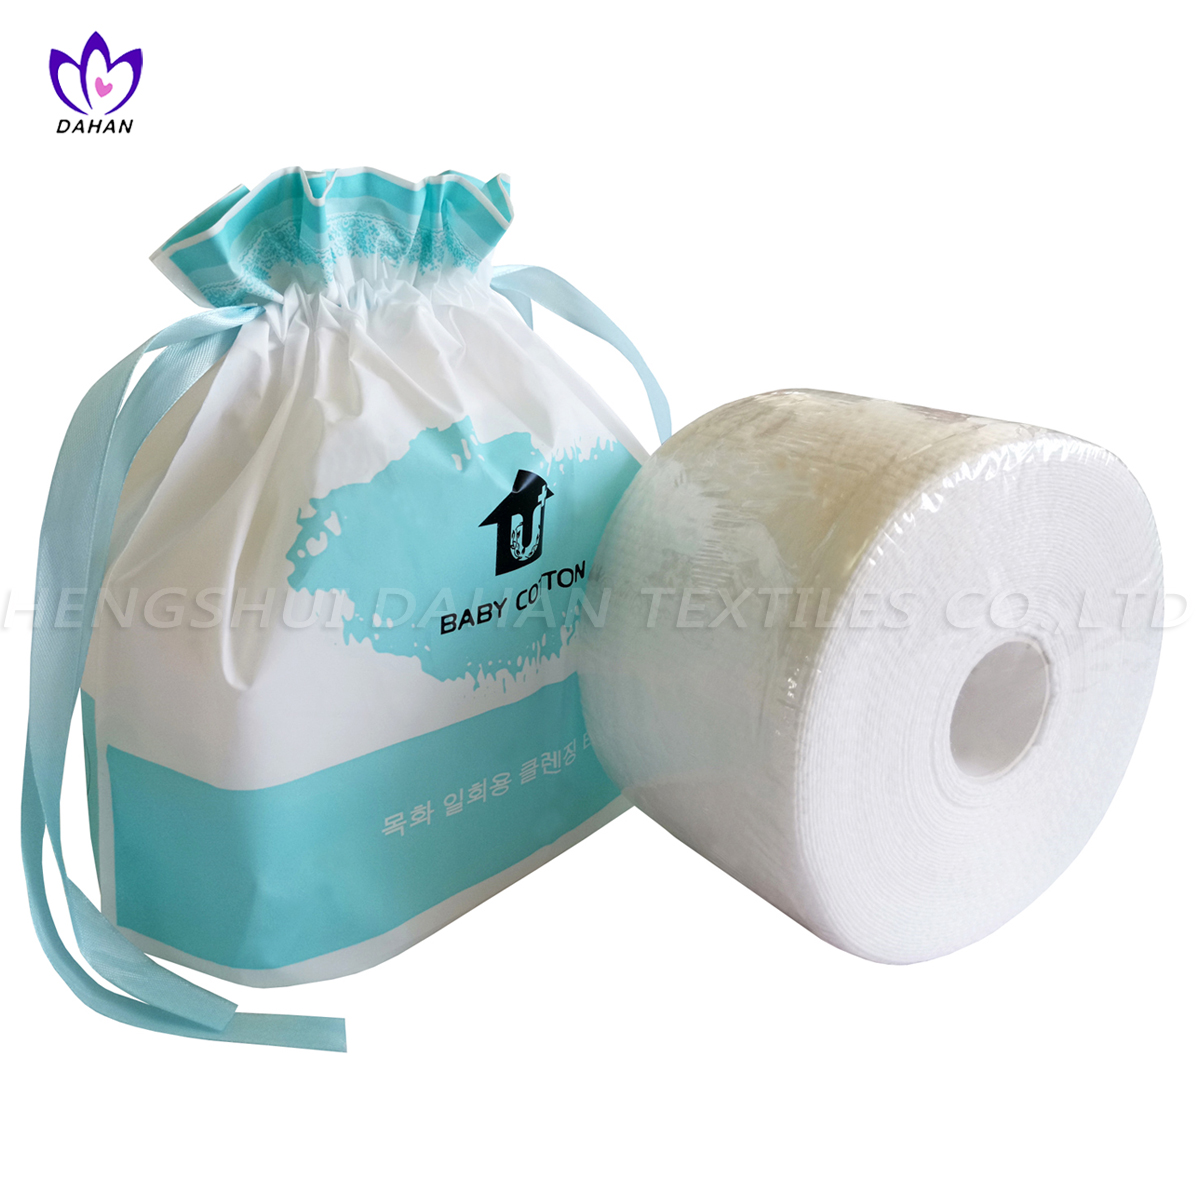 LT01 Disposalble non-woven washcloth.